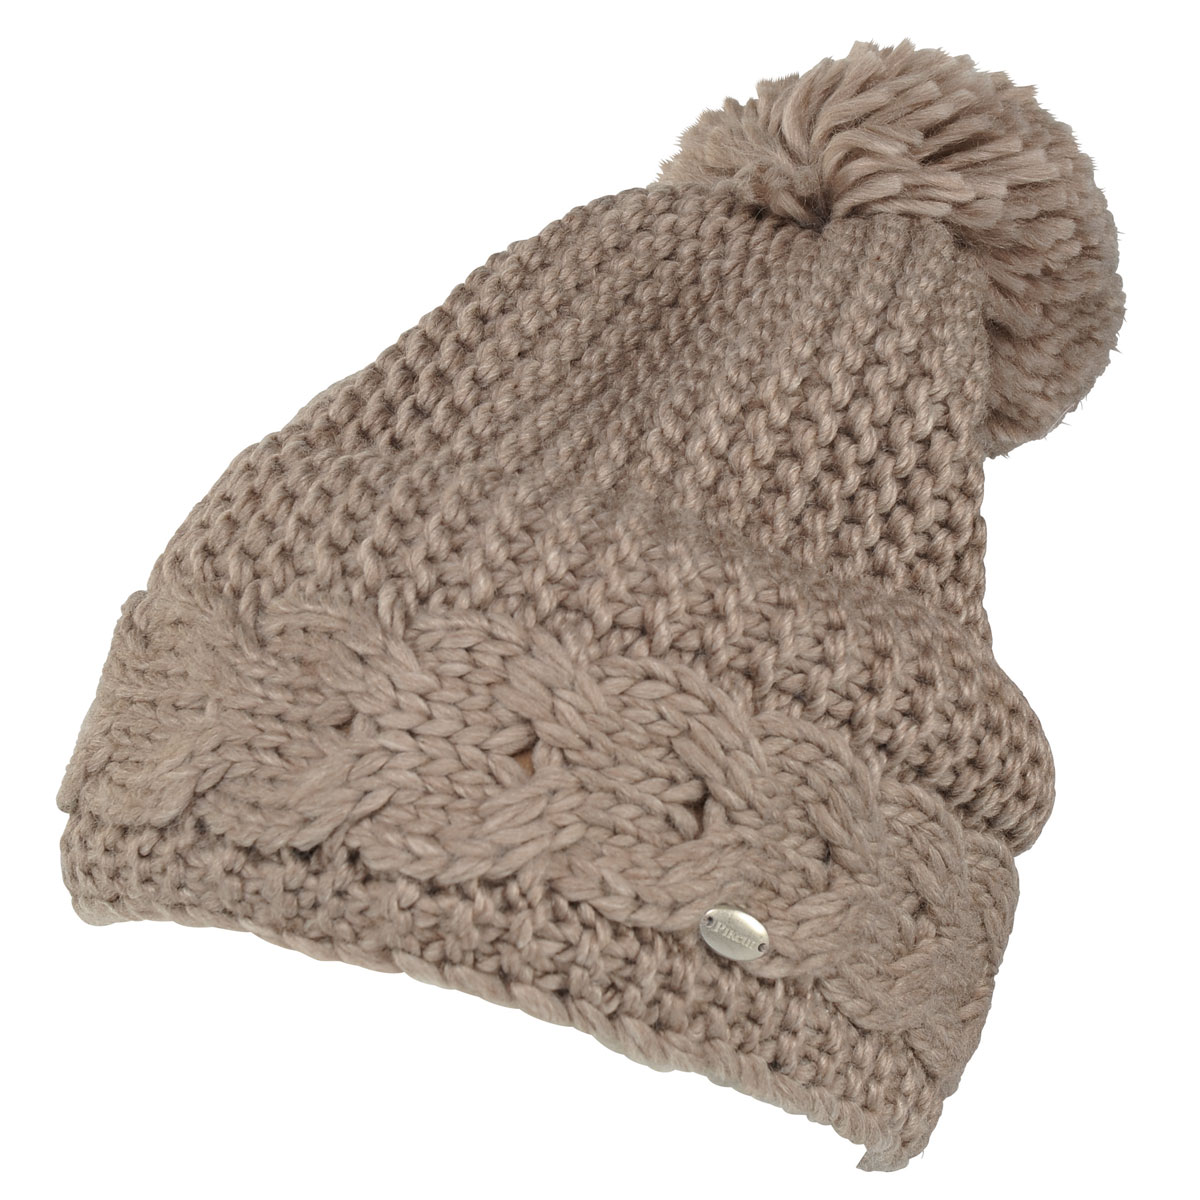 e364c589726 Pikeur Cable Knit Bobble Hat - Light Taupe - Redpost Equestrian